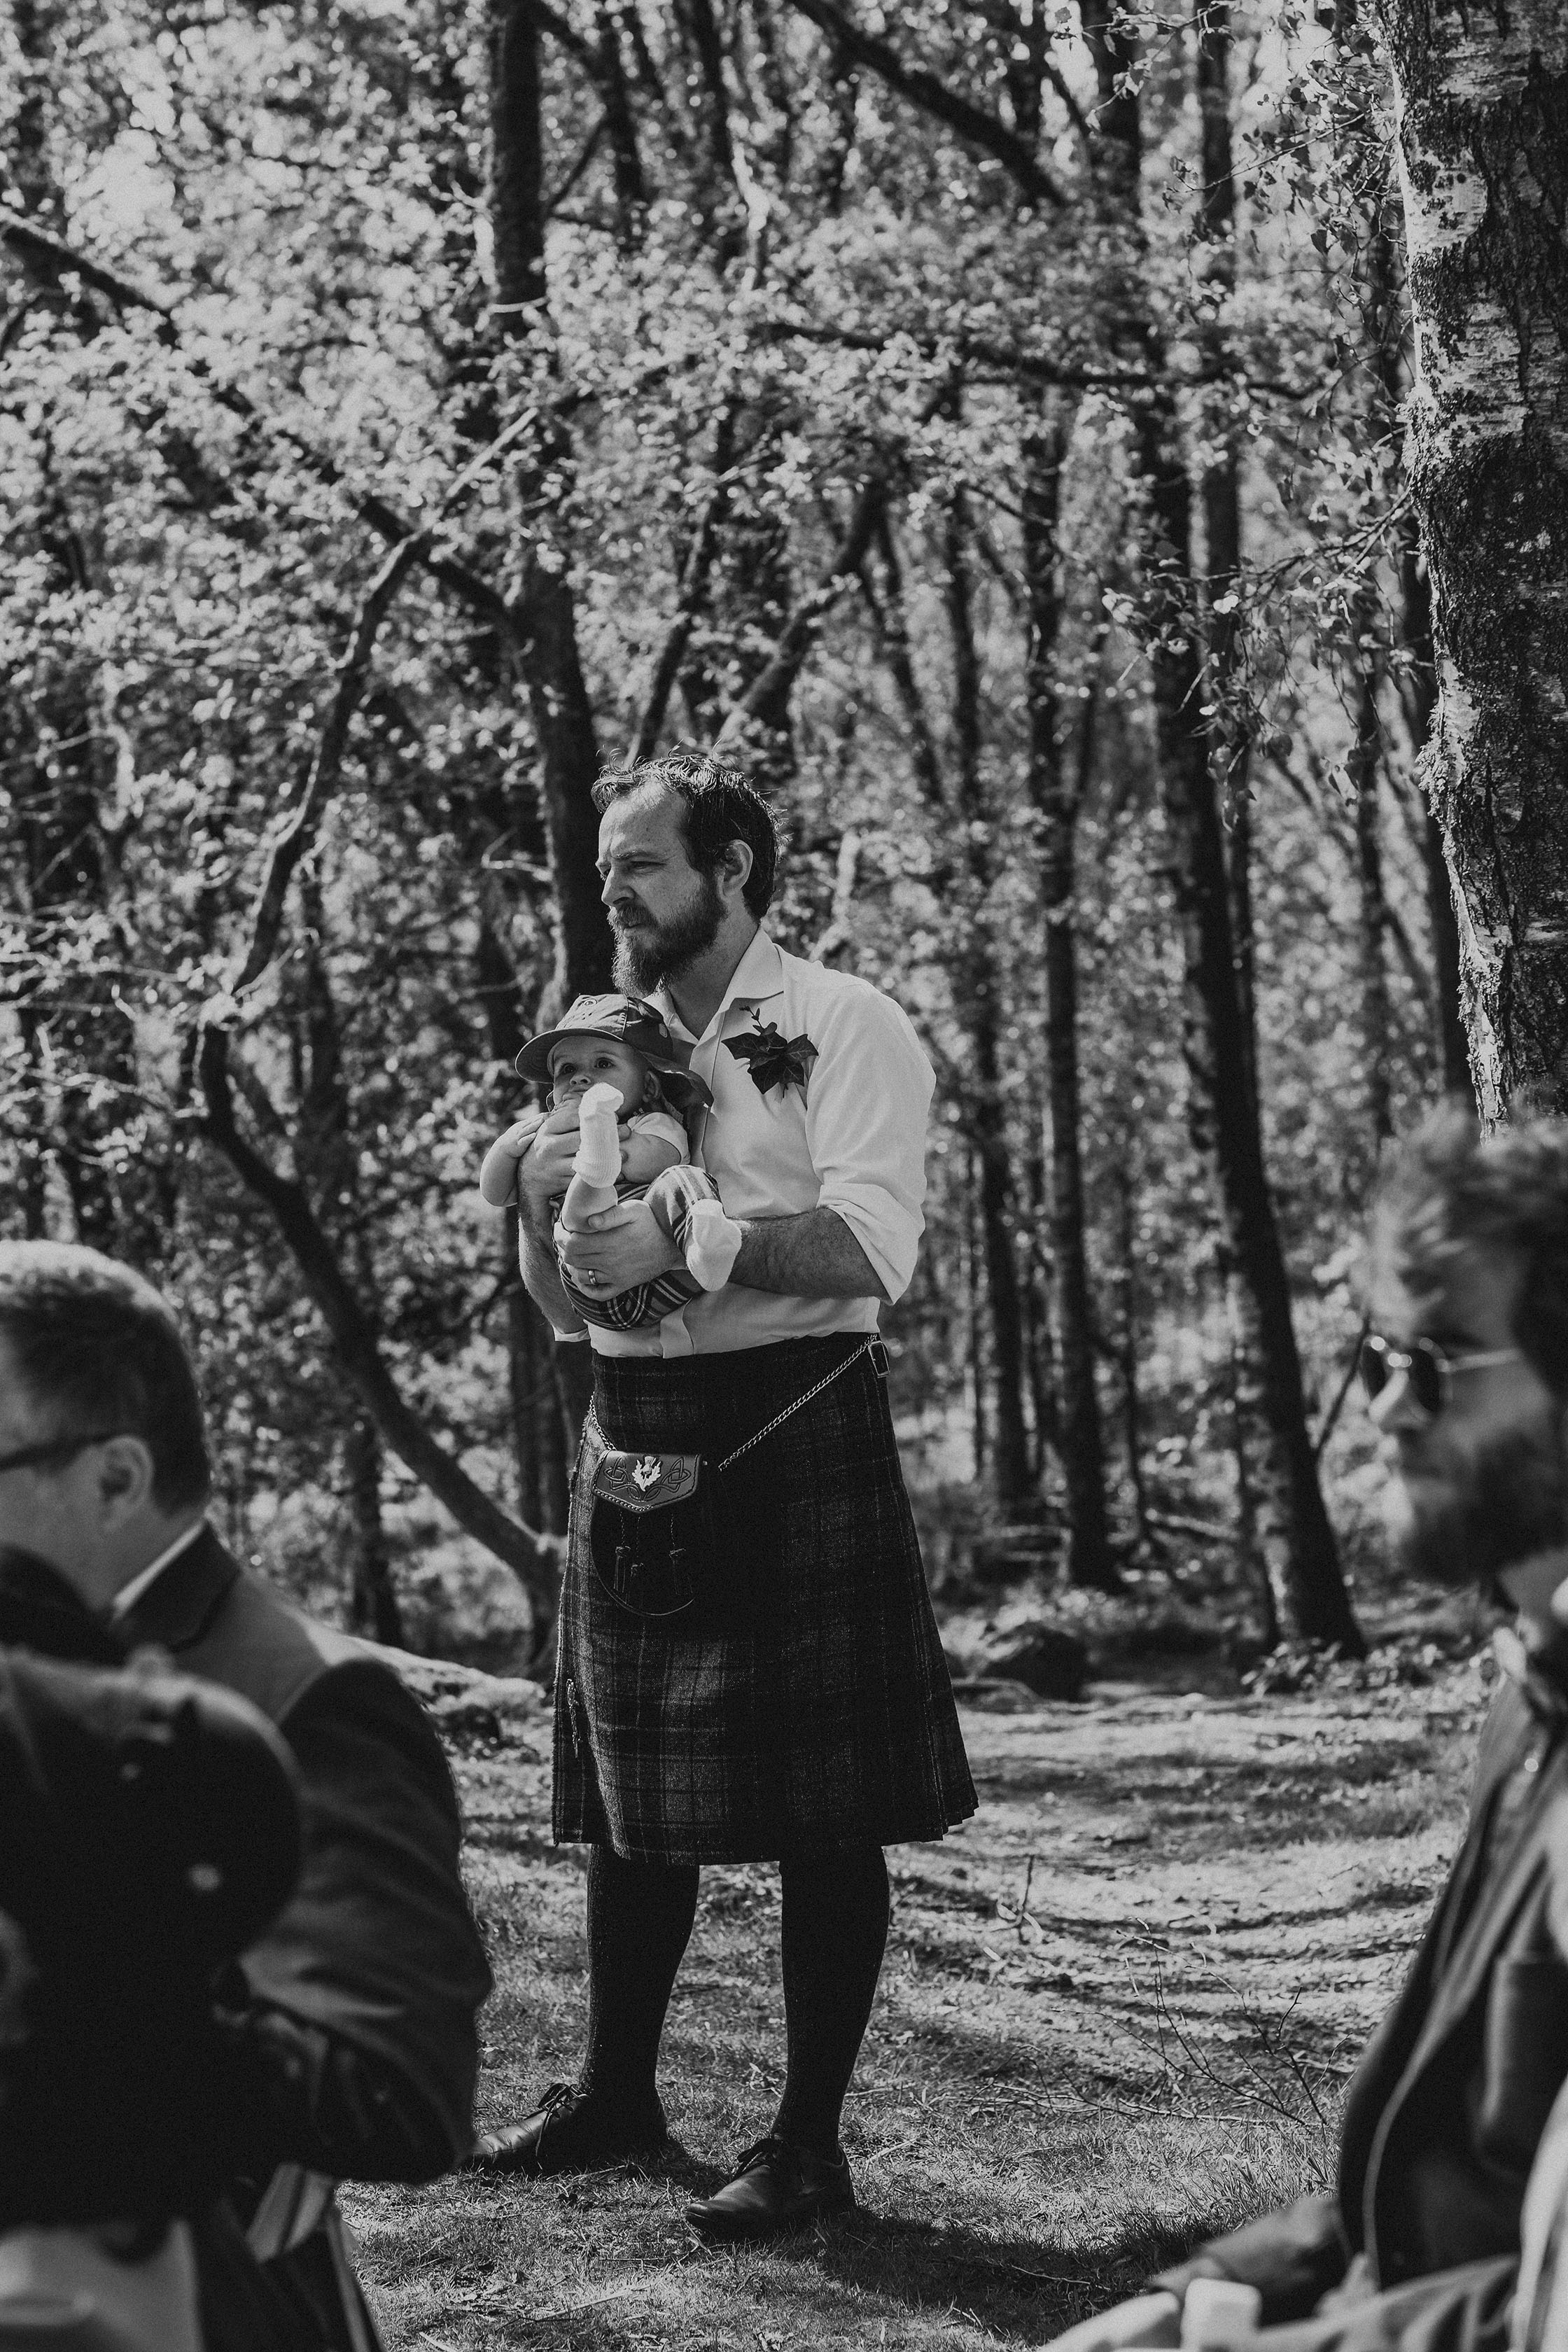 COMRIE_CROFT_WEDDINGS_PJ_PHILLIPS_PHOTOGRAPHY_74.jpg